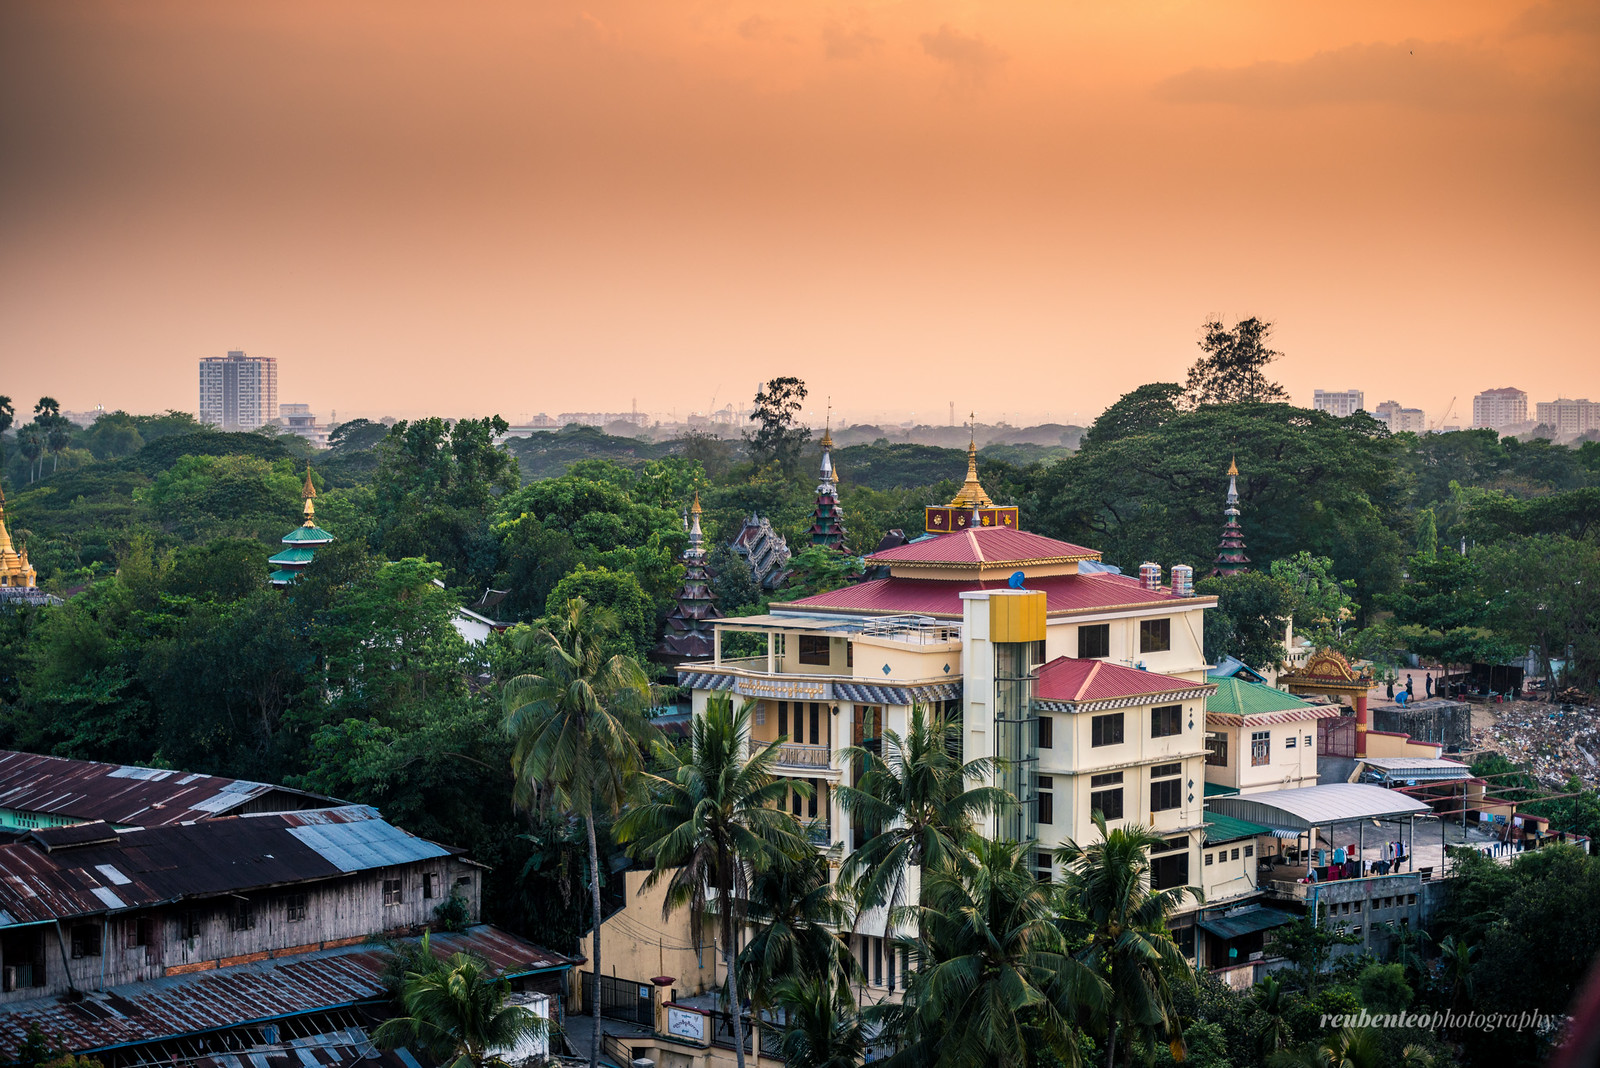 Yangon at Sunset